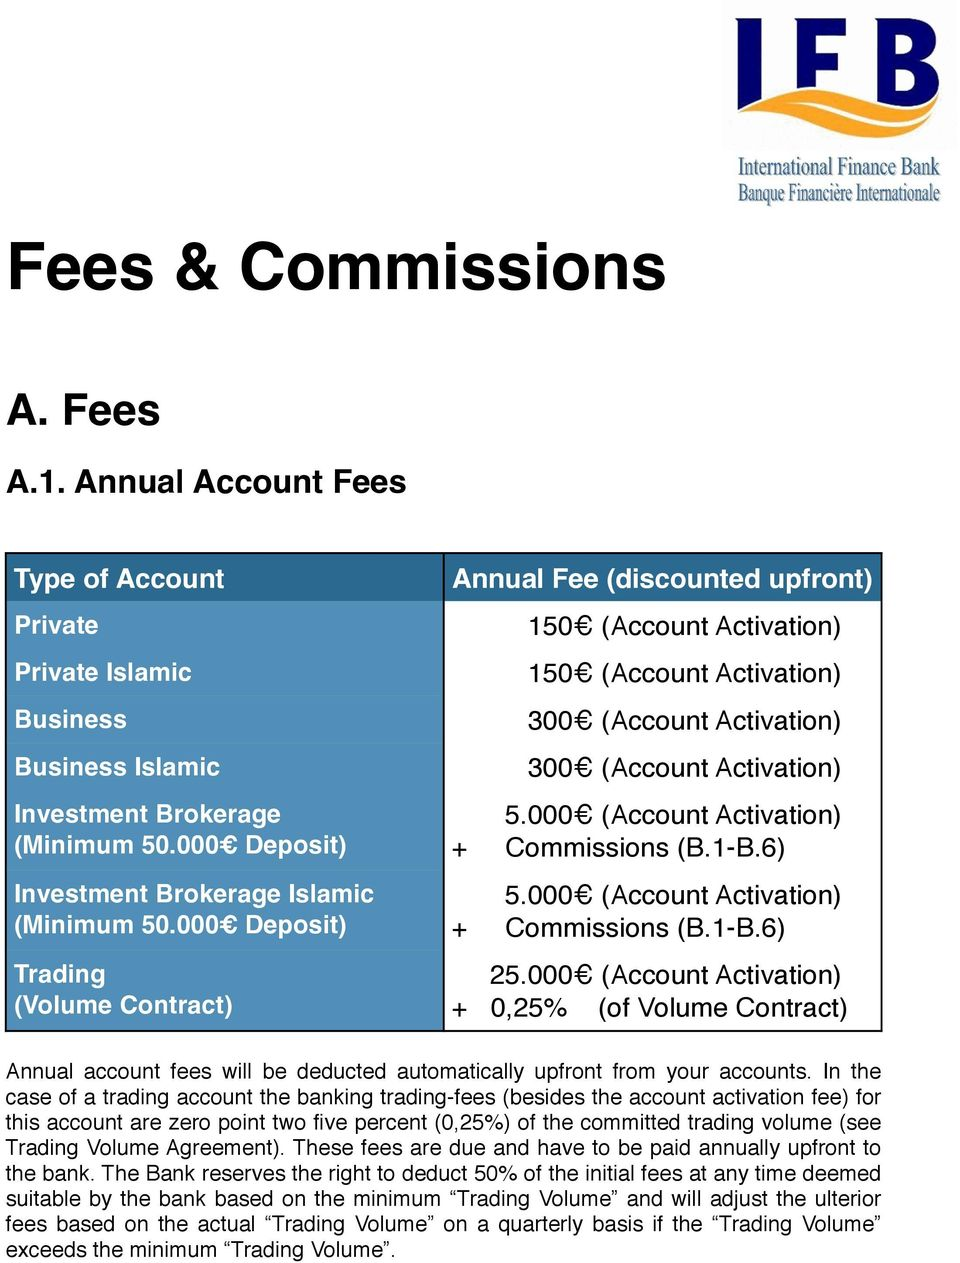 Volume Agreement). These fees are due and have to be paid annually upfront to the bank.